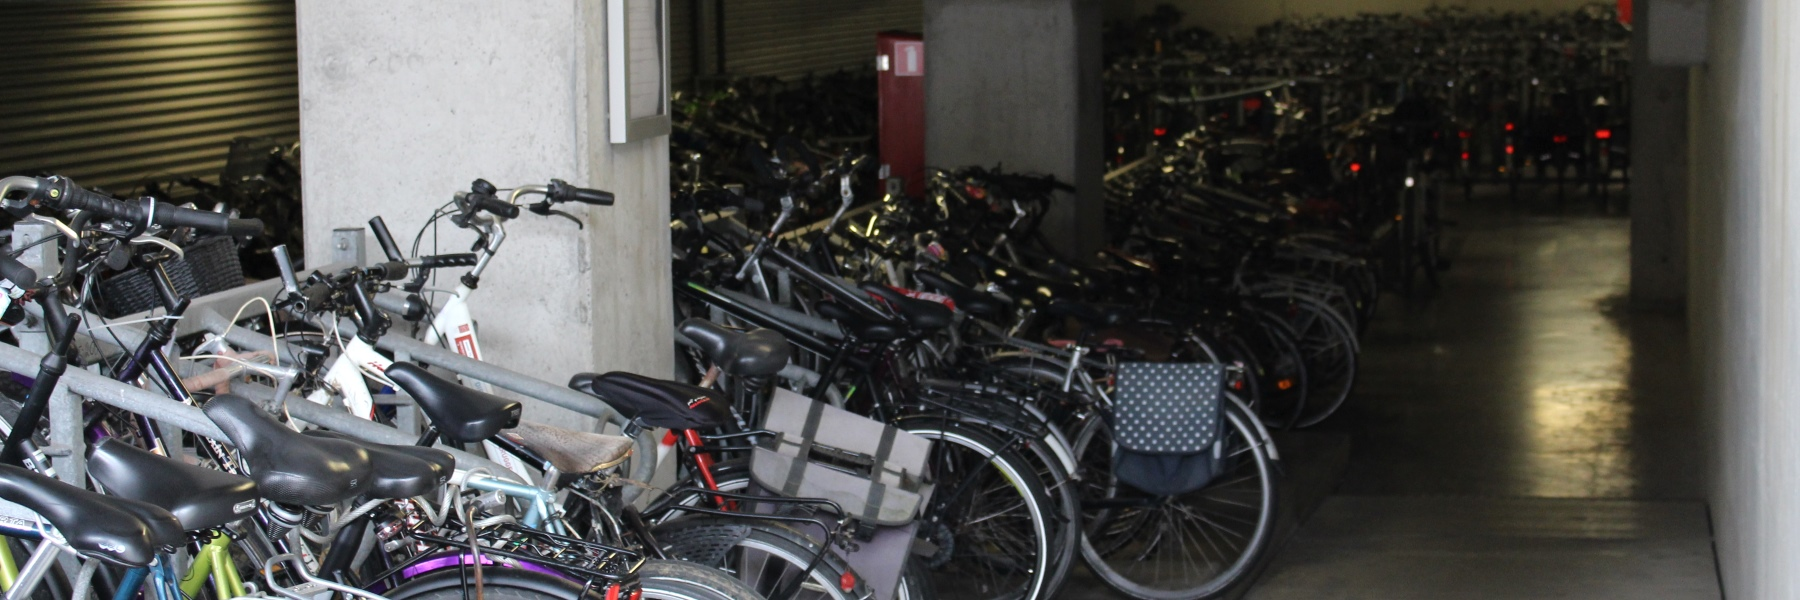 Bike parking: the next generation